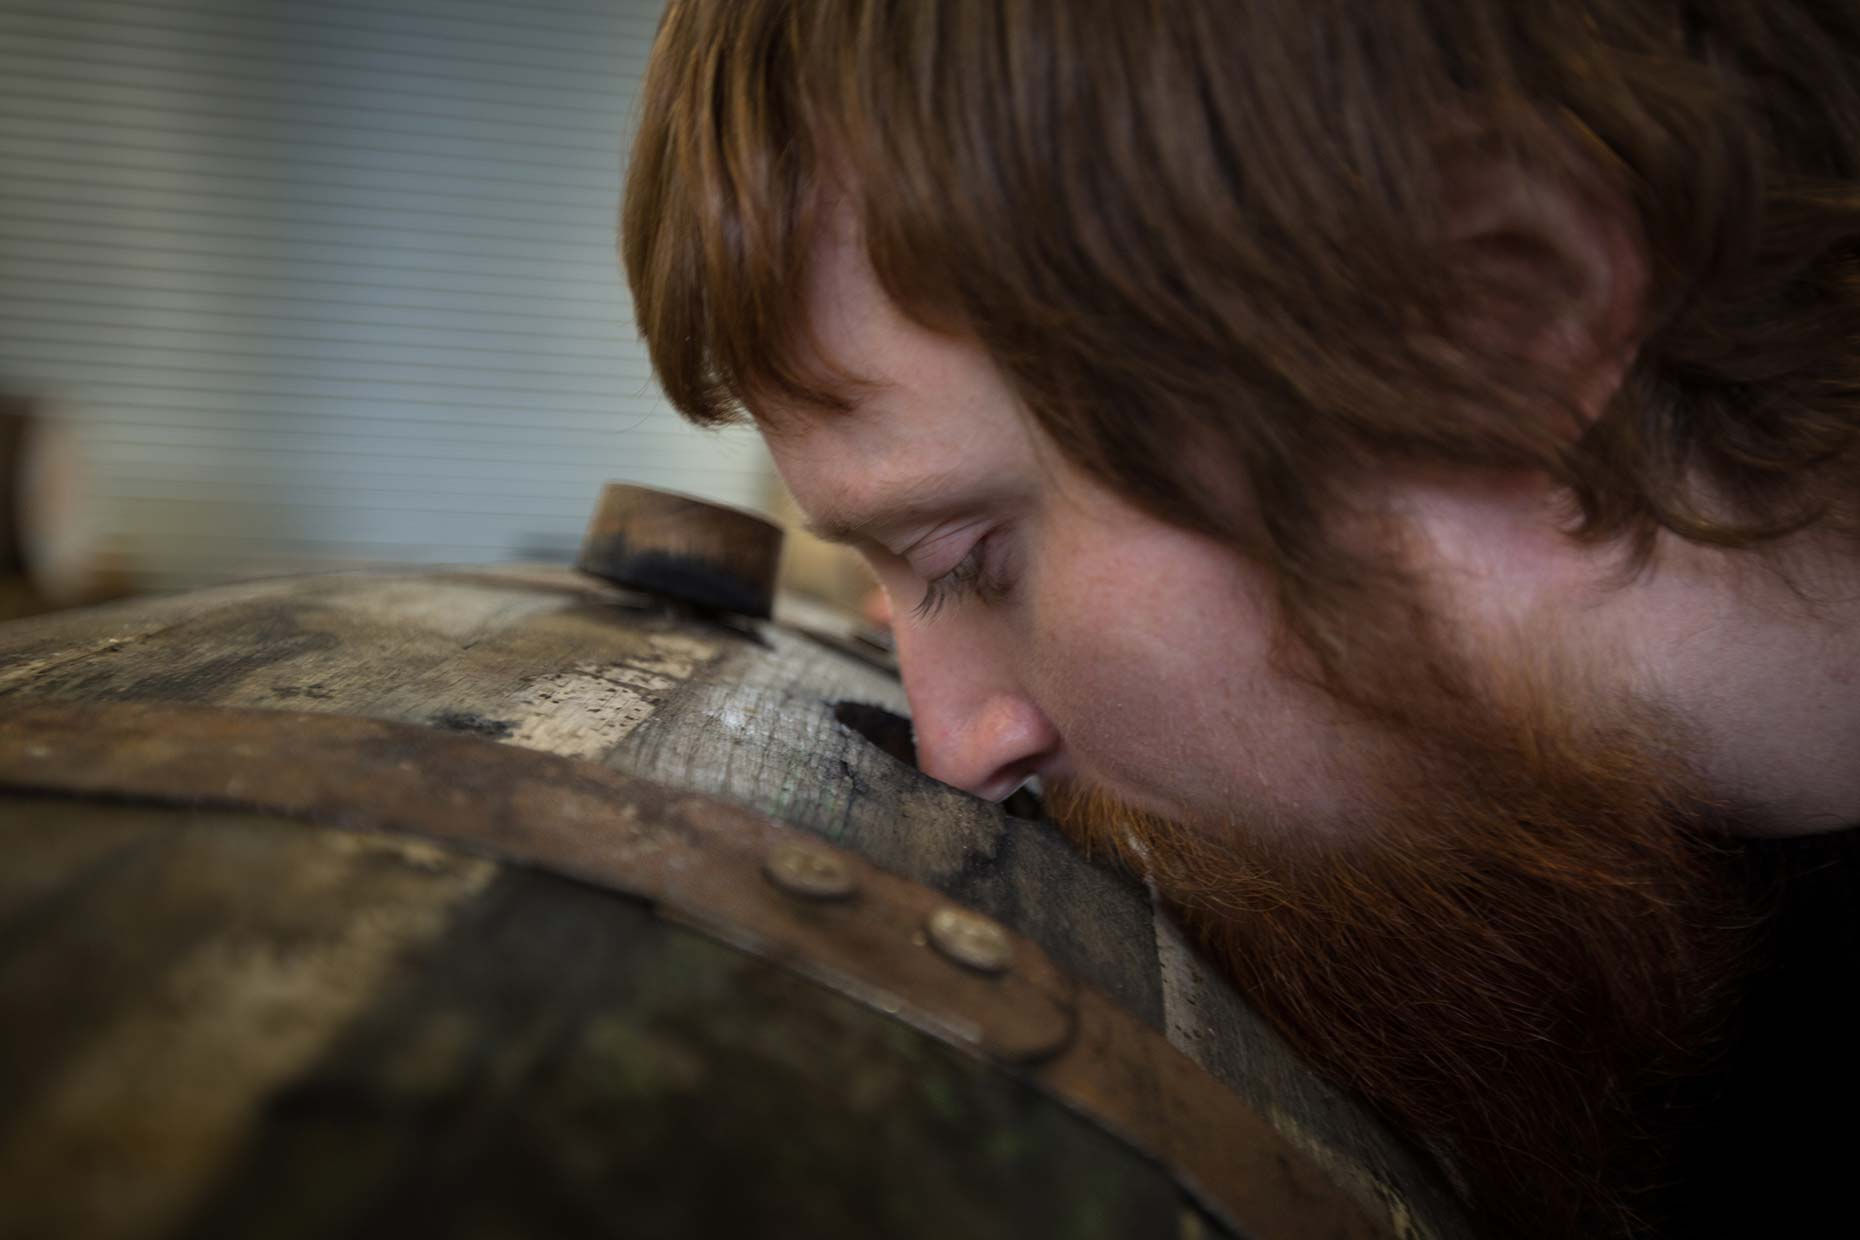 Nosing a cask of Scottish single malt whisky, Scotland